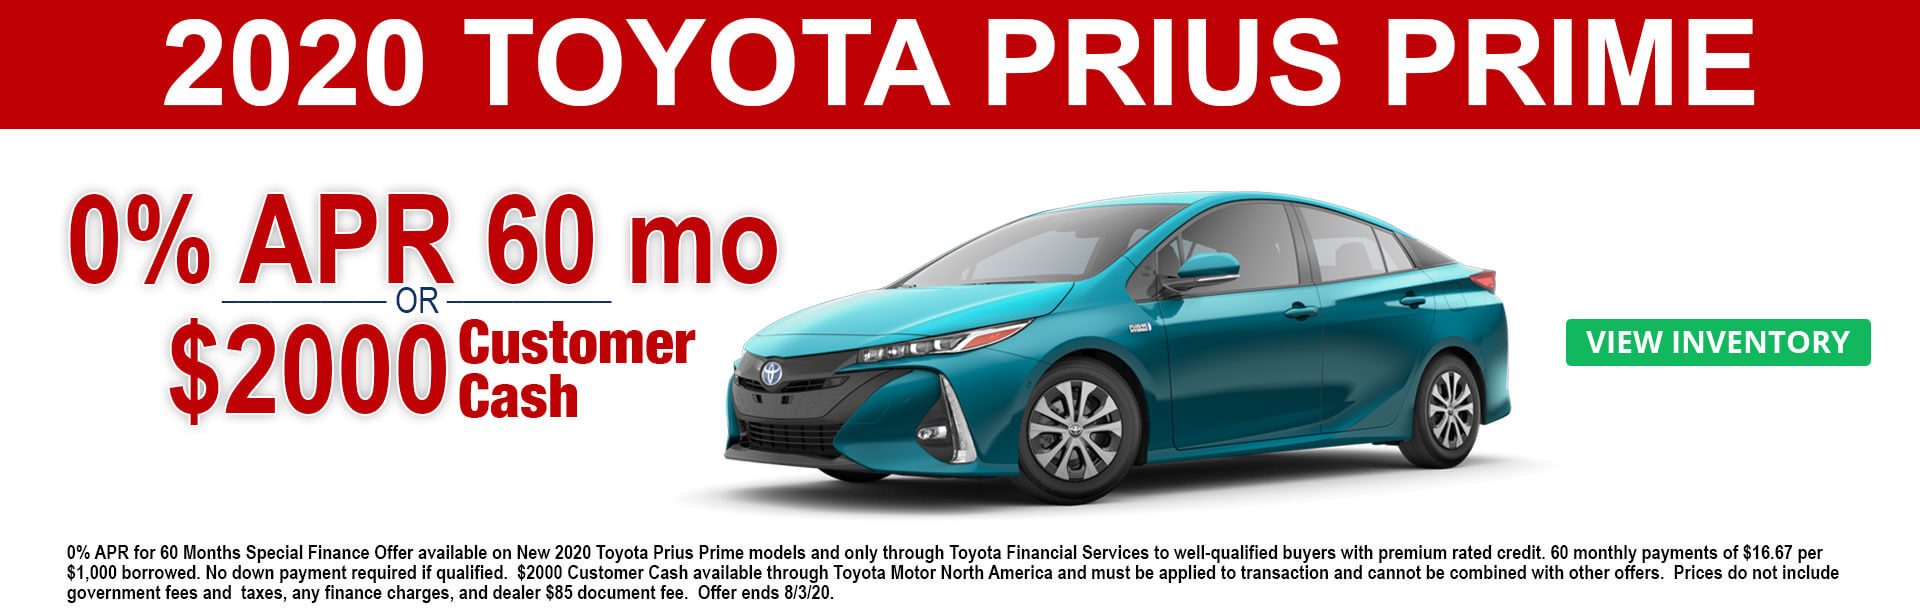 2020 Toyota Prius Prime Cash and APR offers